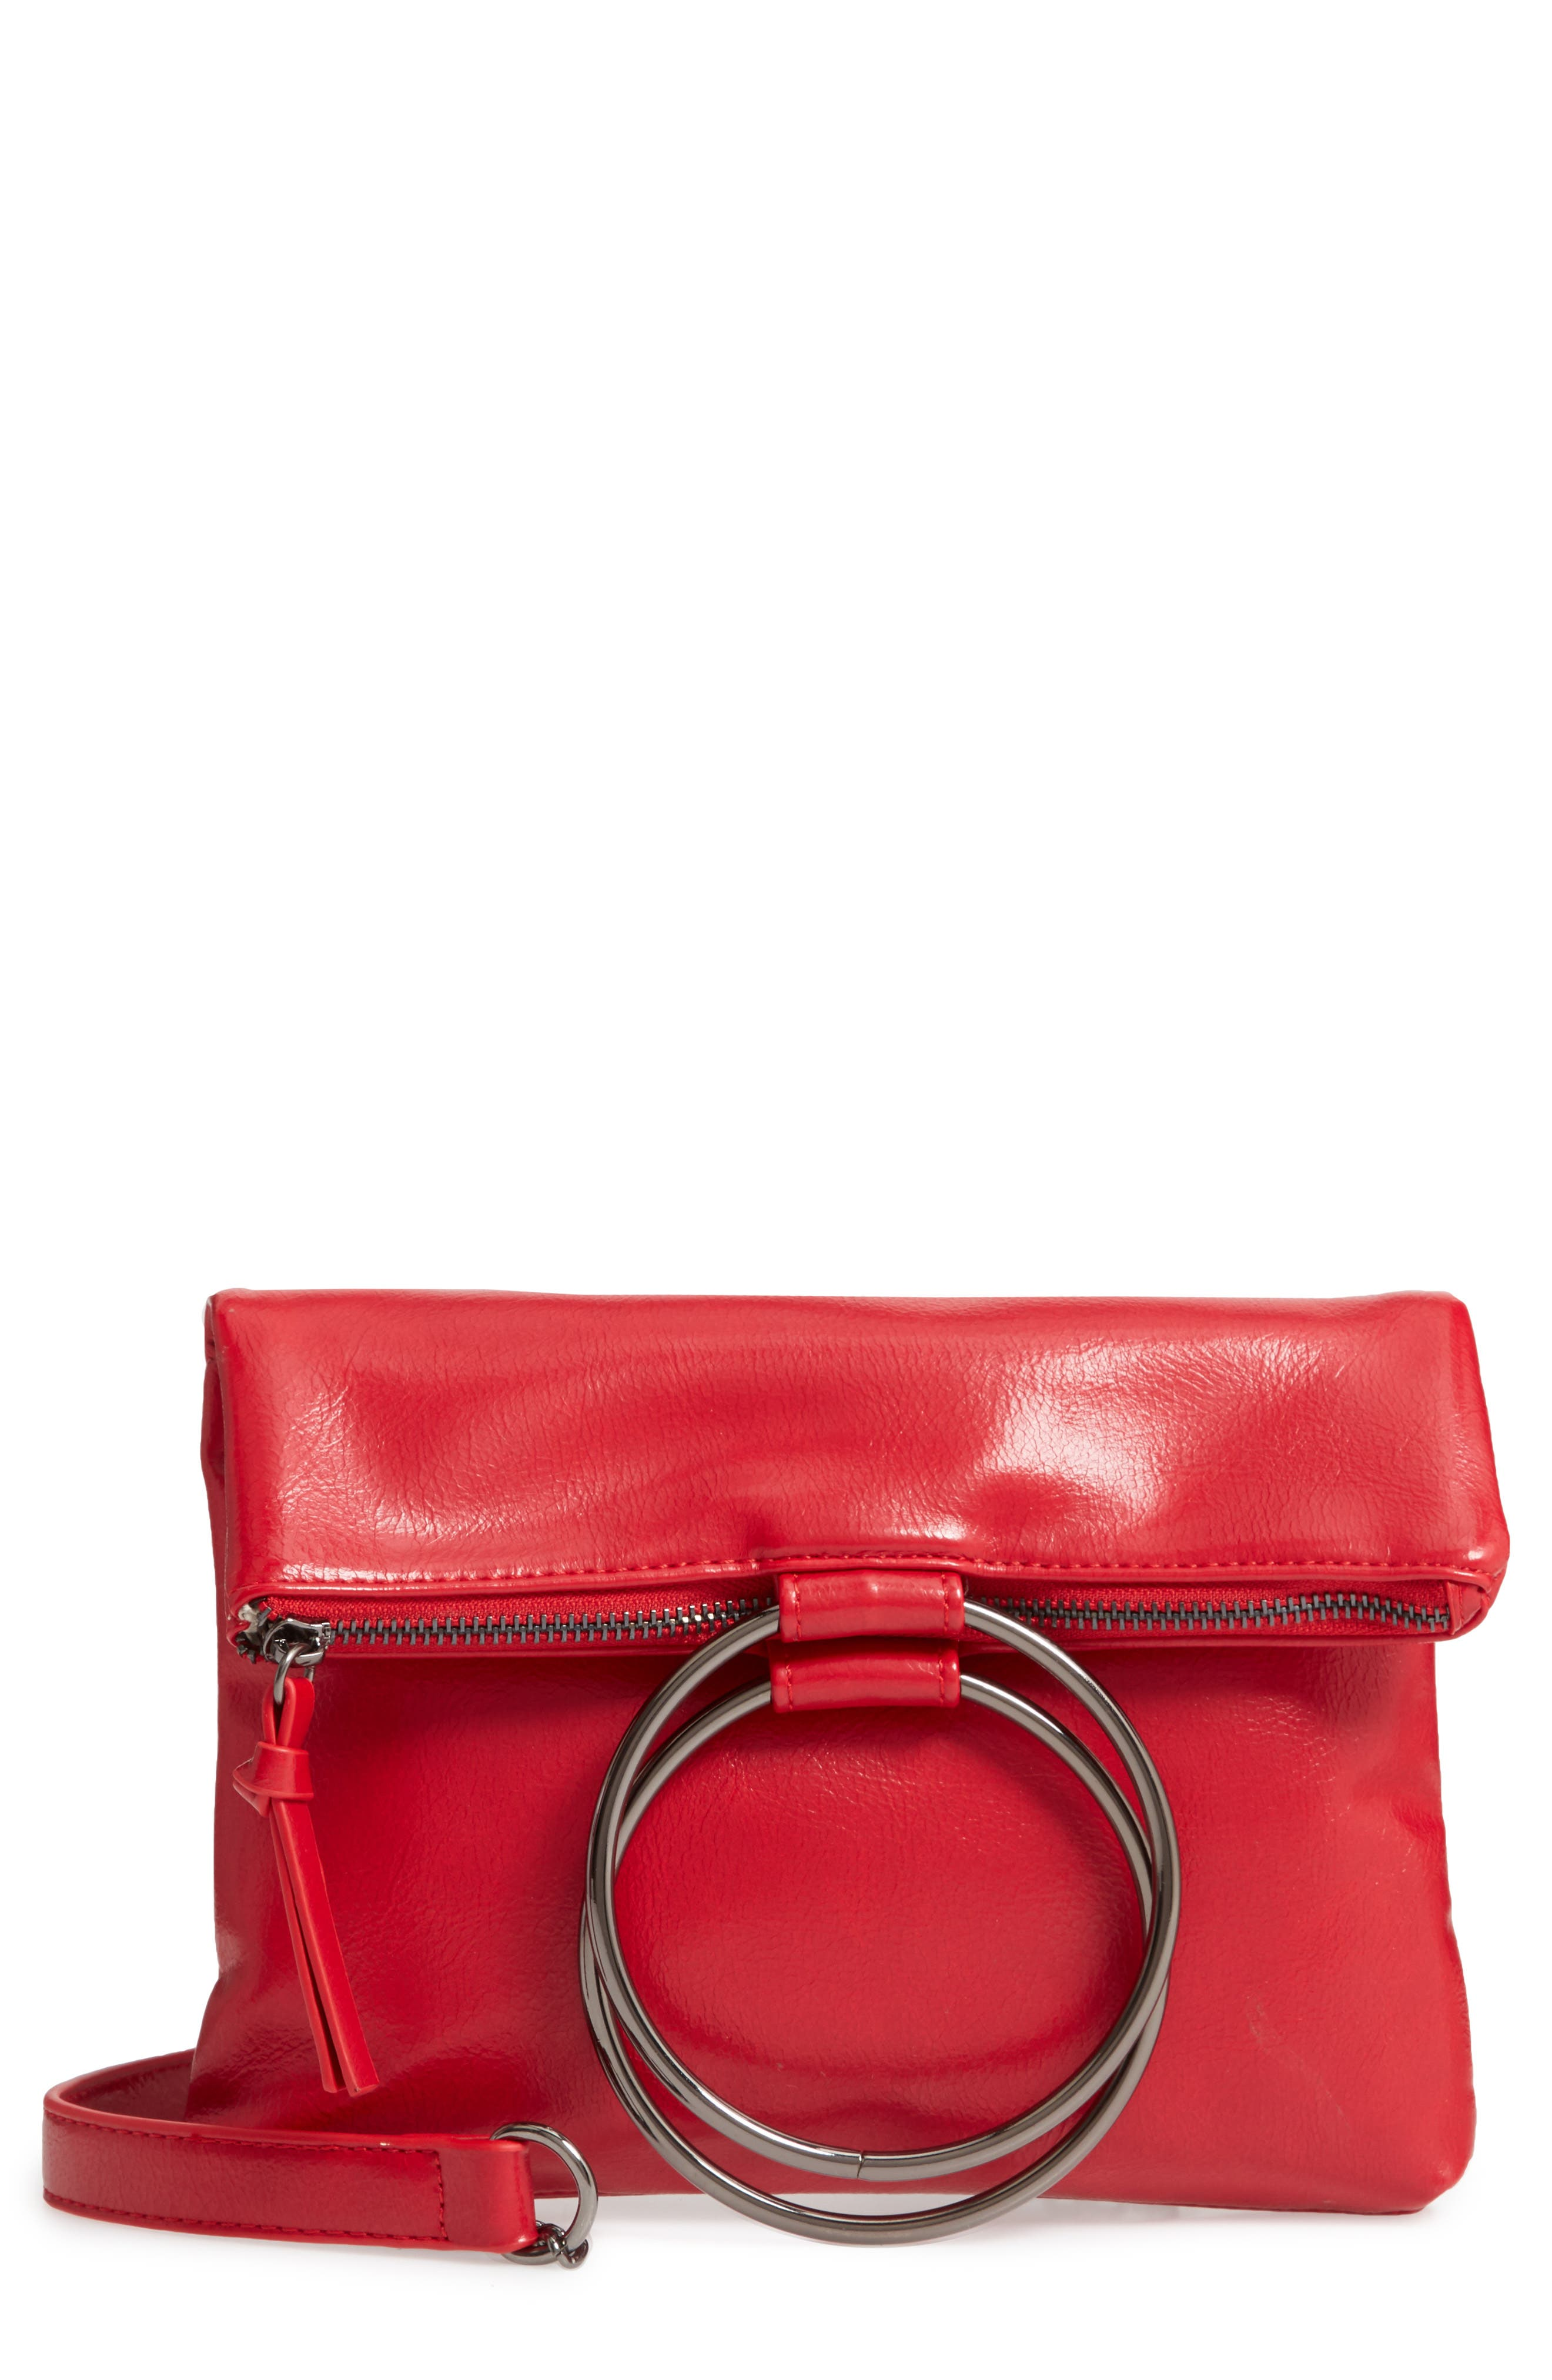 MUCHE ET MUCHETTE Clare Ring Handle Faux Leather Crossbody Bag - Red